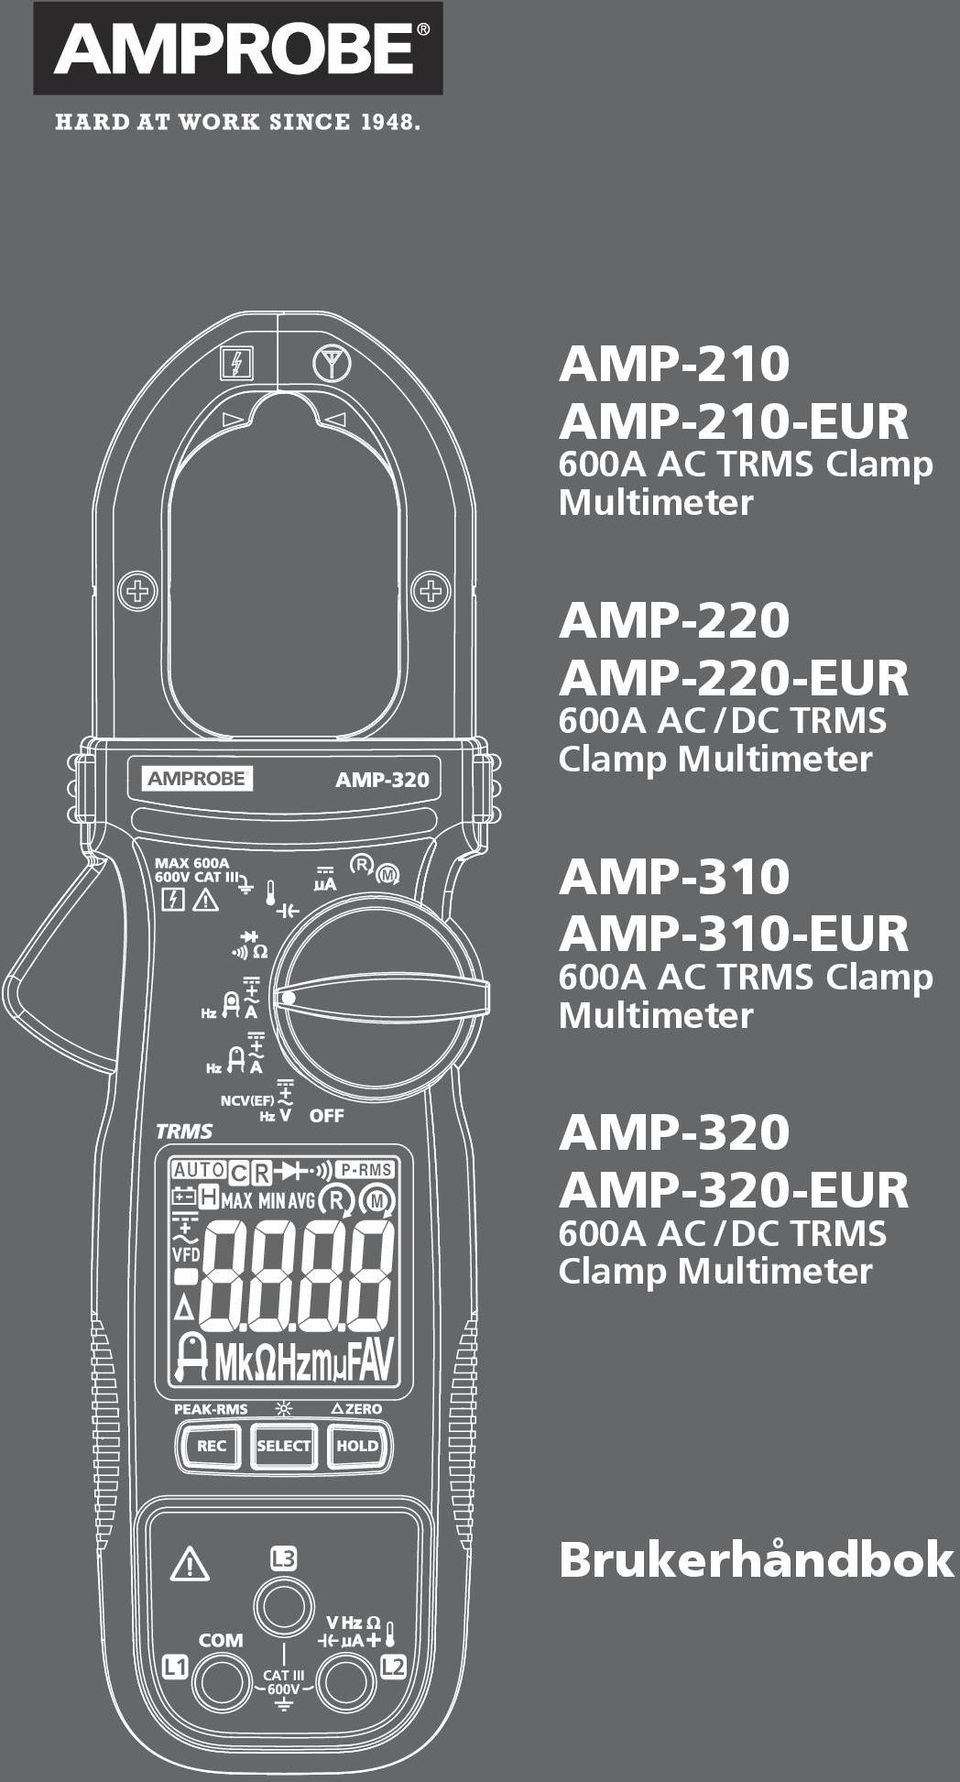 AMP-310 AMP-310-EUR 600A AC TRMS Clamp Multimeter